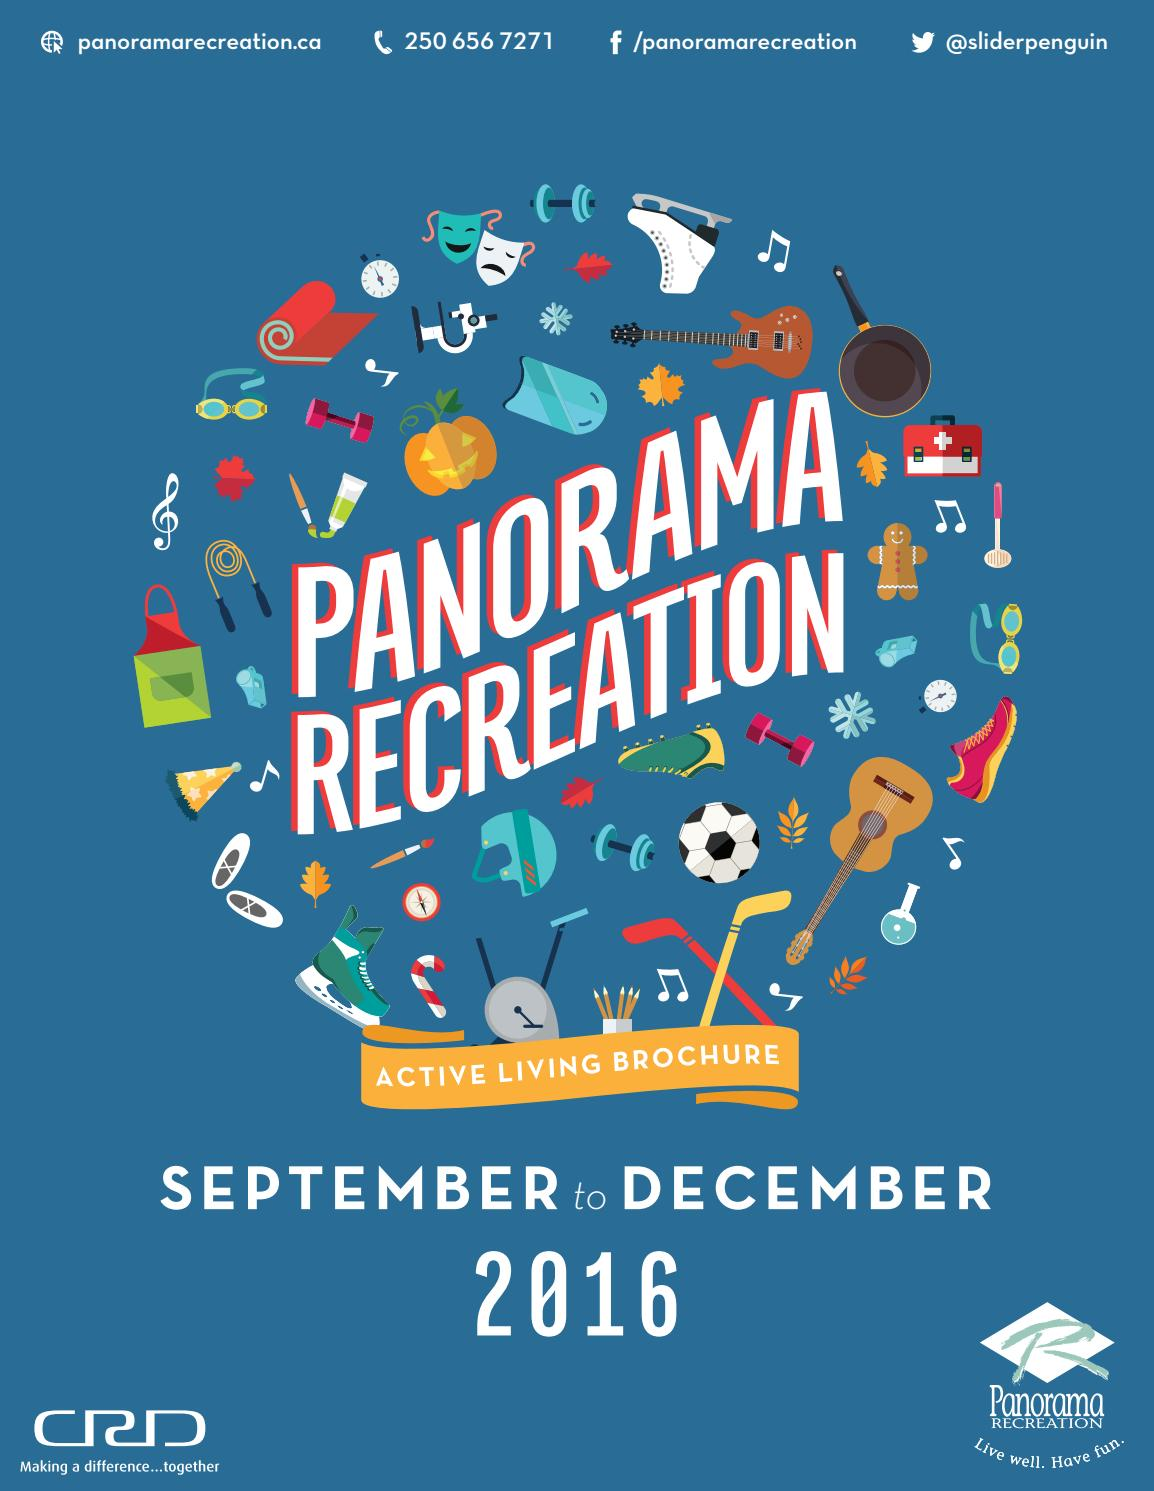 b77bc7c1e4c2 Panorama Recreation Fall 2016 Active Living Brochure by Panorama Recreation  - issuu